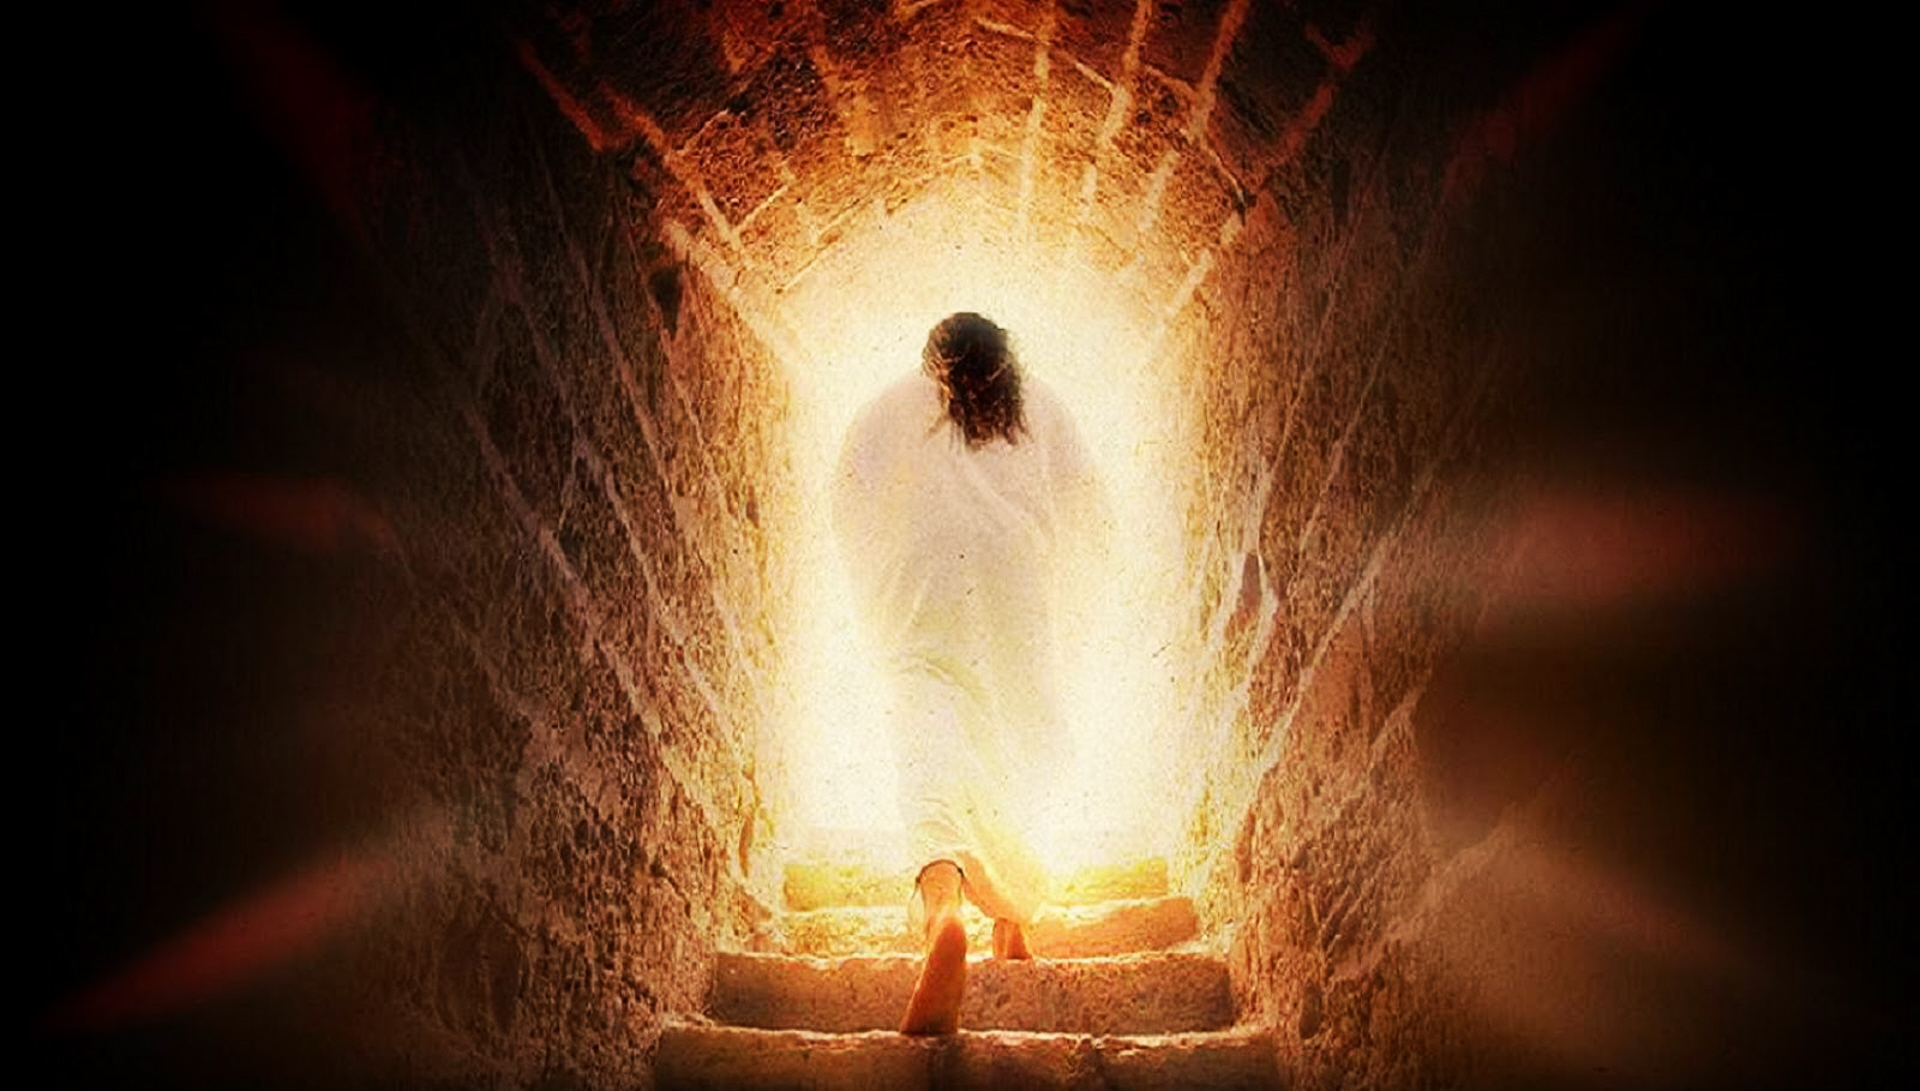 happy easter jesus risen resurrection hd wallpaper background 1920x1091